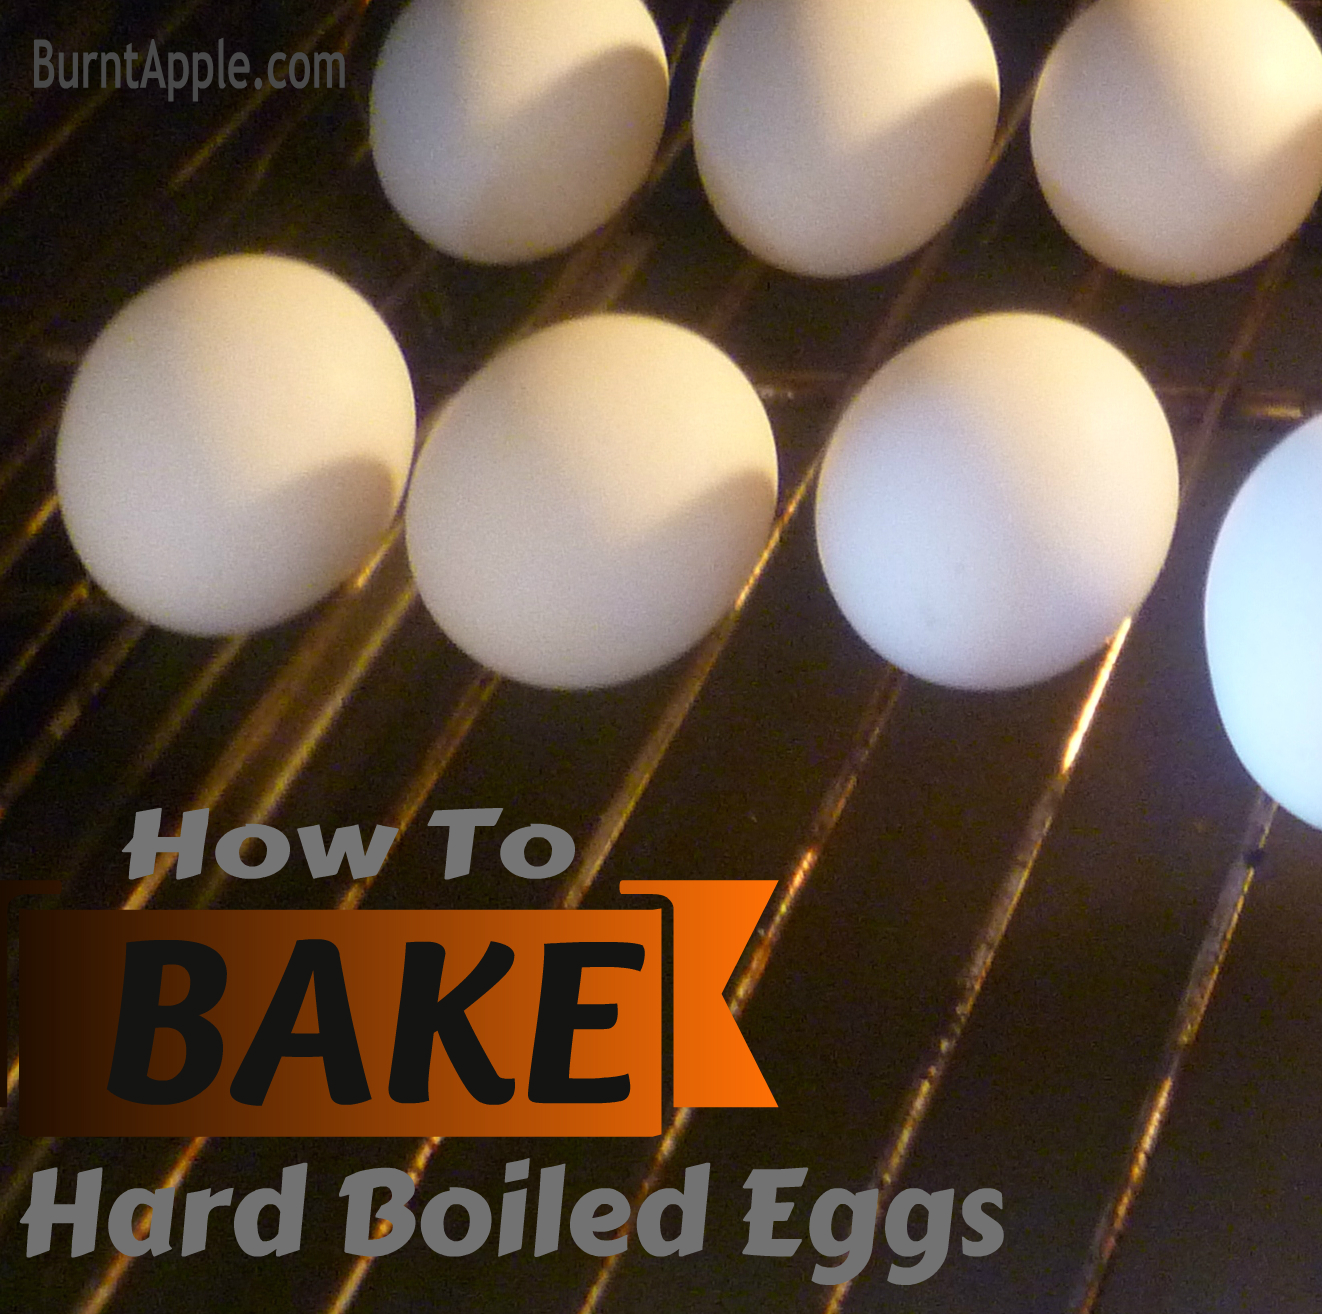 {Trying It Tuesday} How to Bake A Hard Boiled Egg